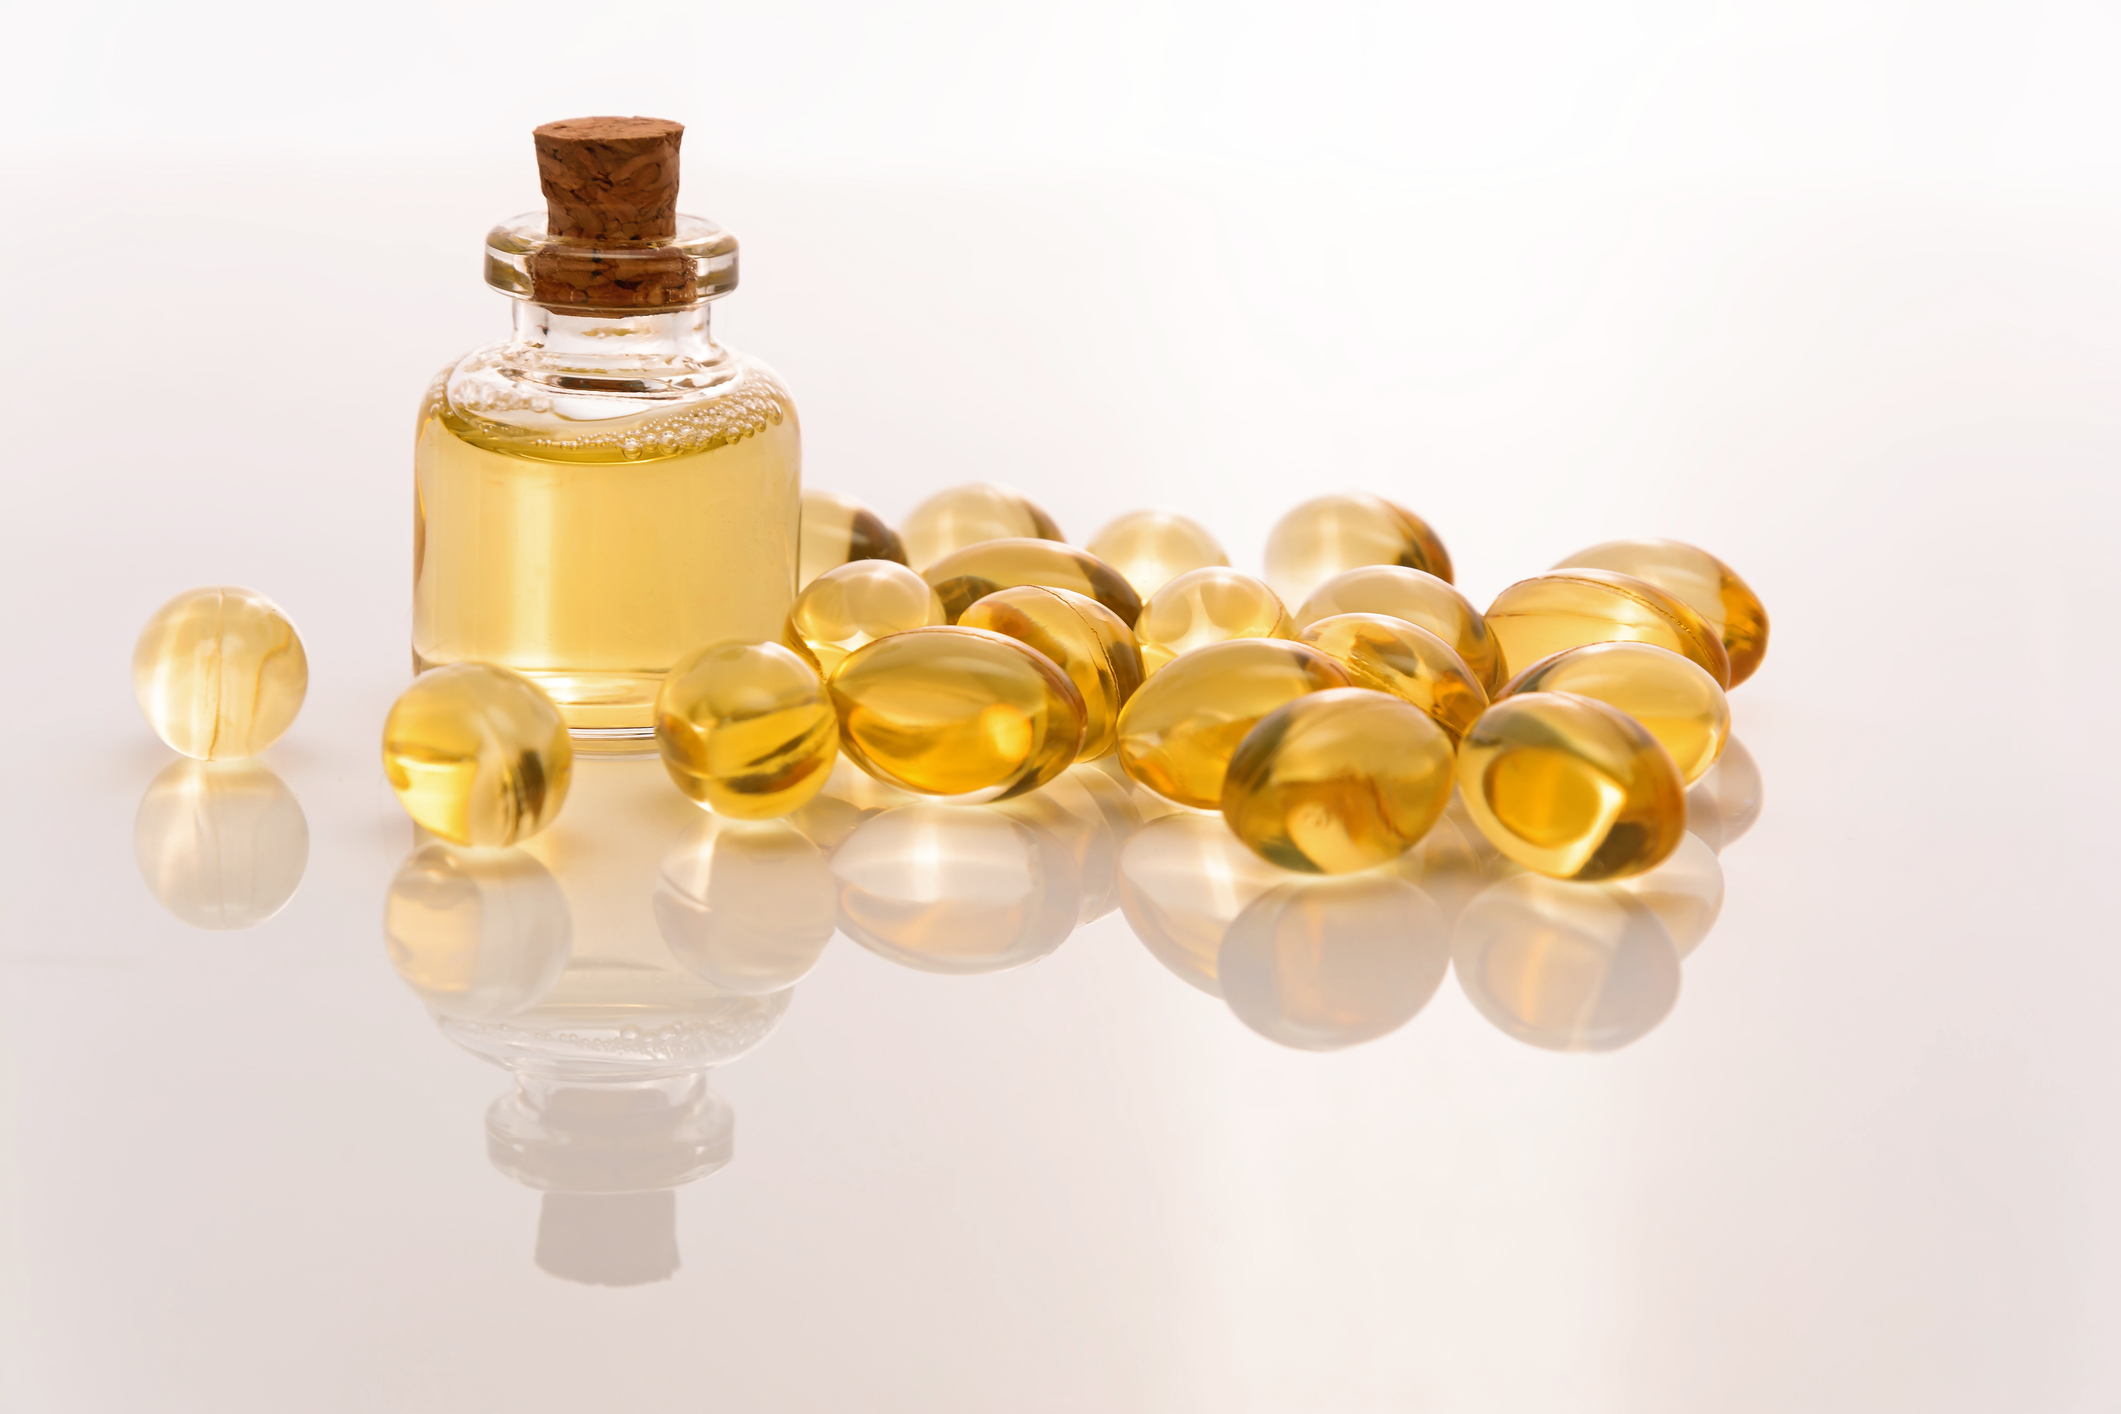 fish oil tablets and liquid